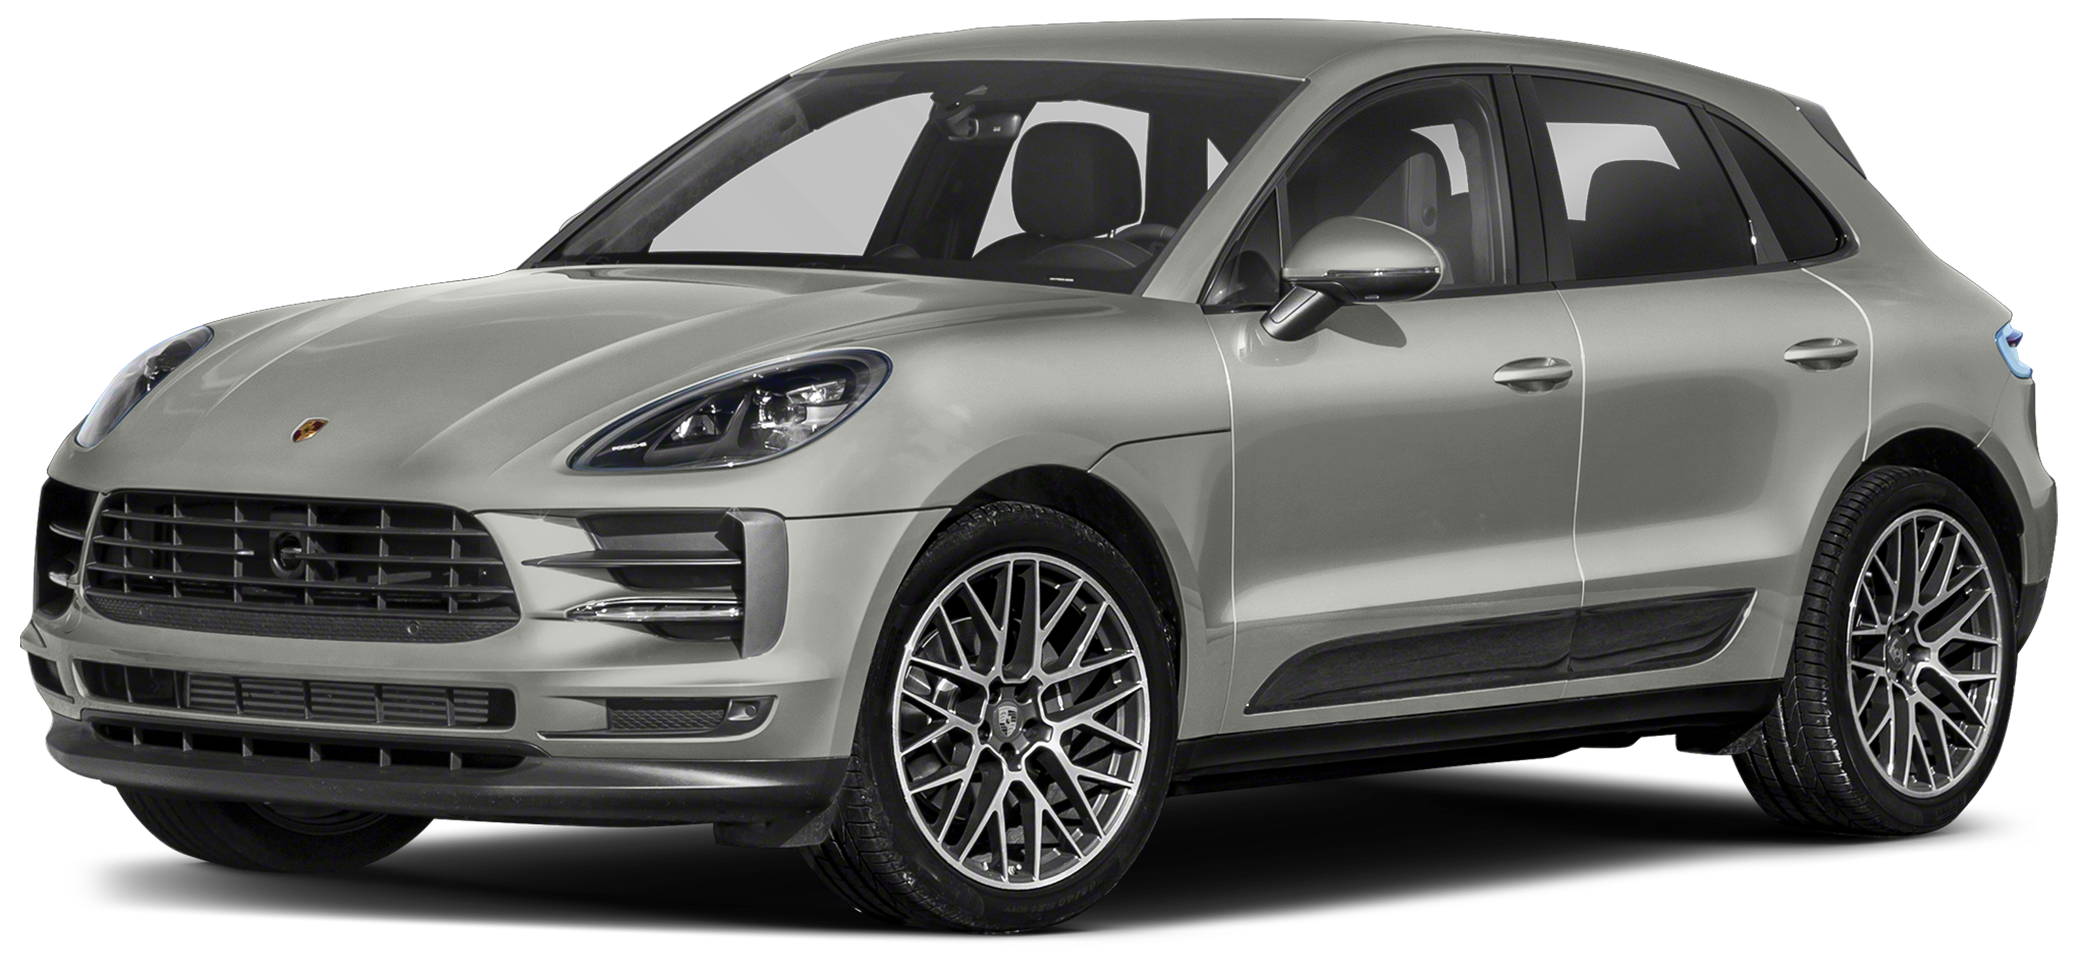 2019 Porsche Macan Incentives, Specials & Offers in ...